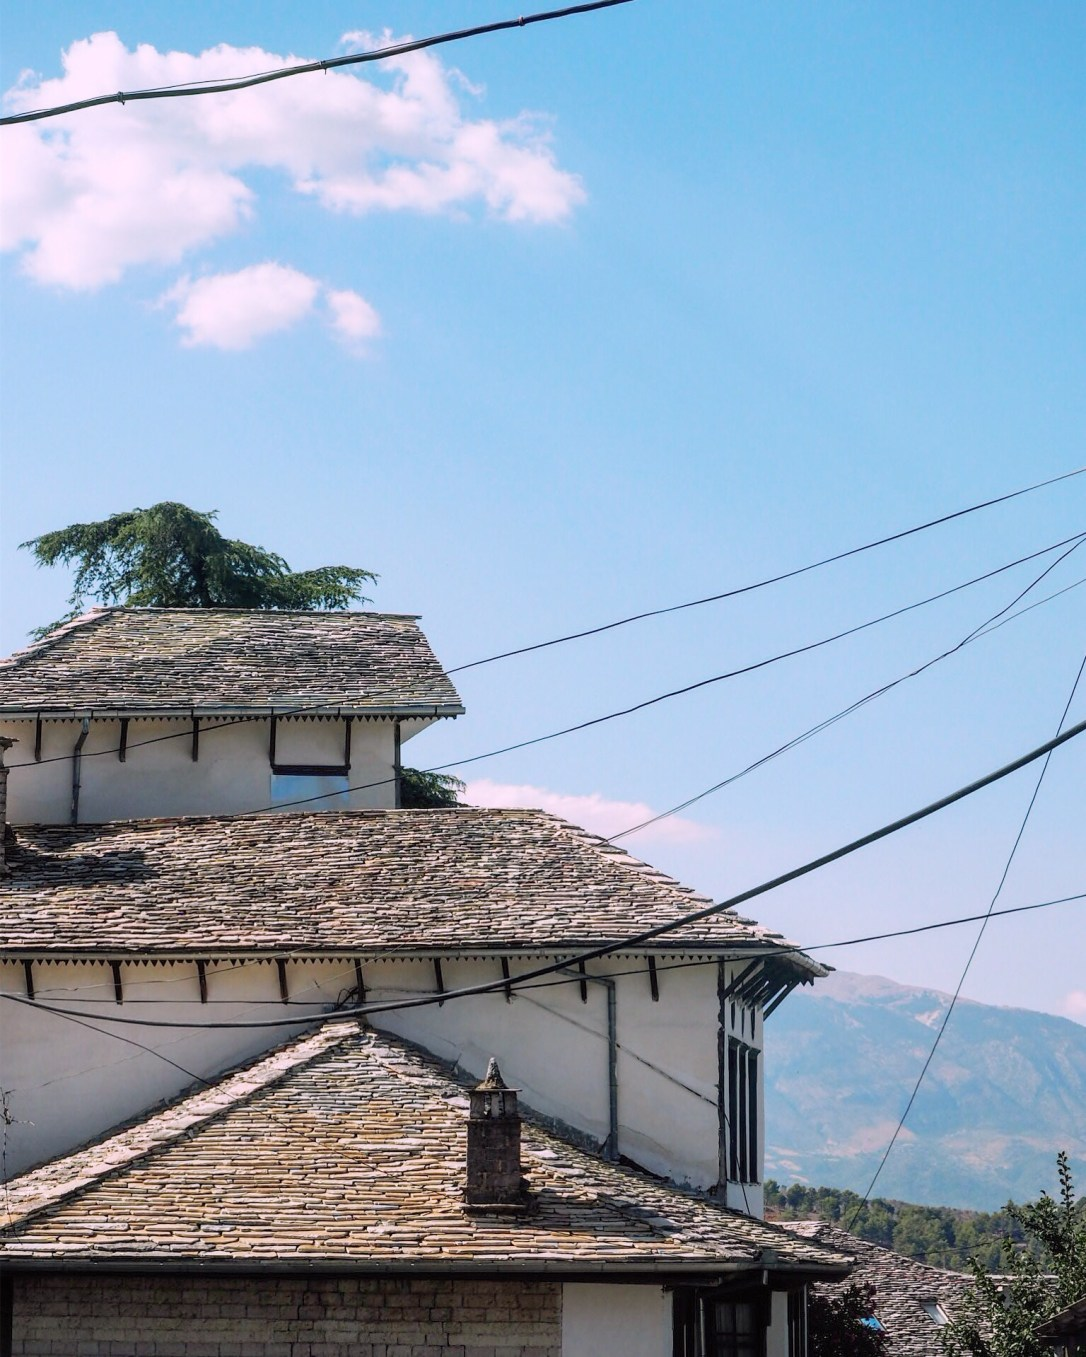 One of the best places to see traditional Ottoman architecture- Albania's Stone City